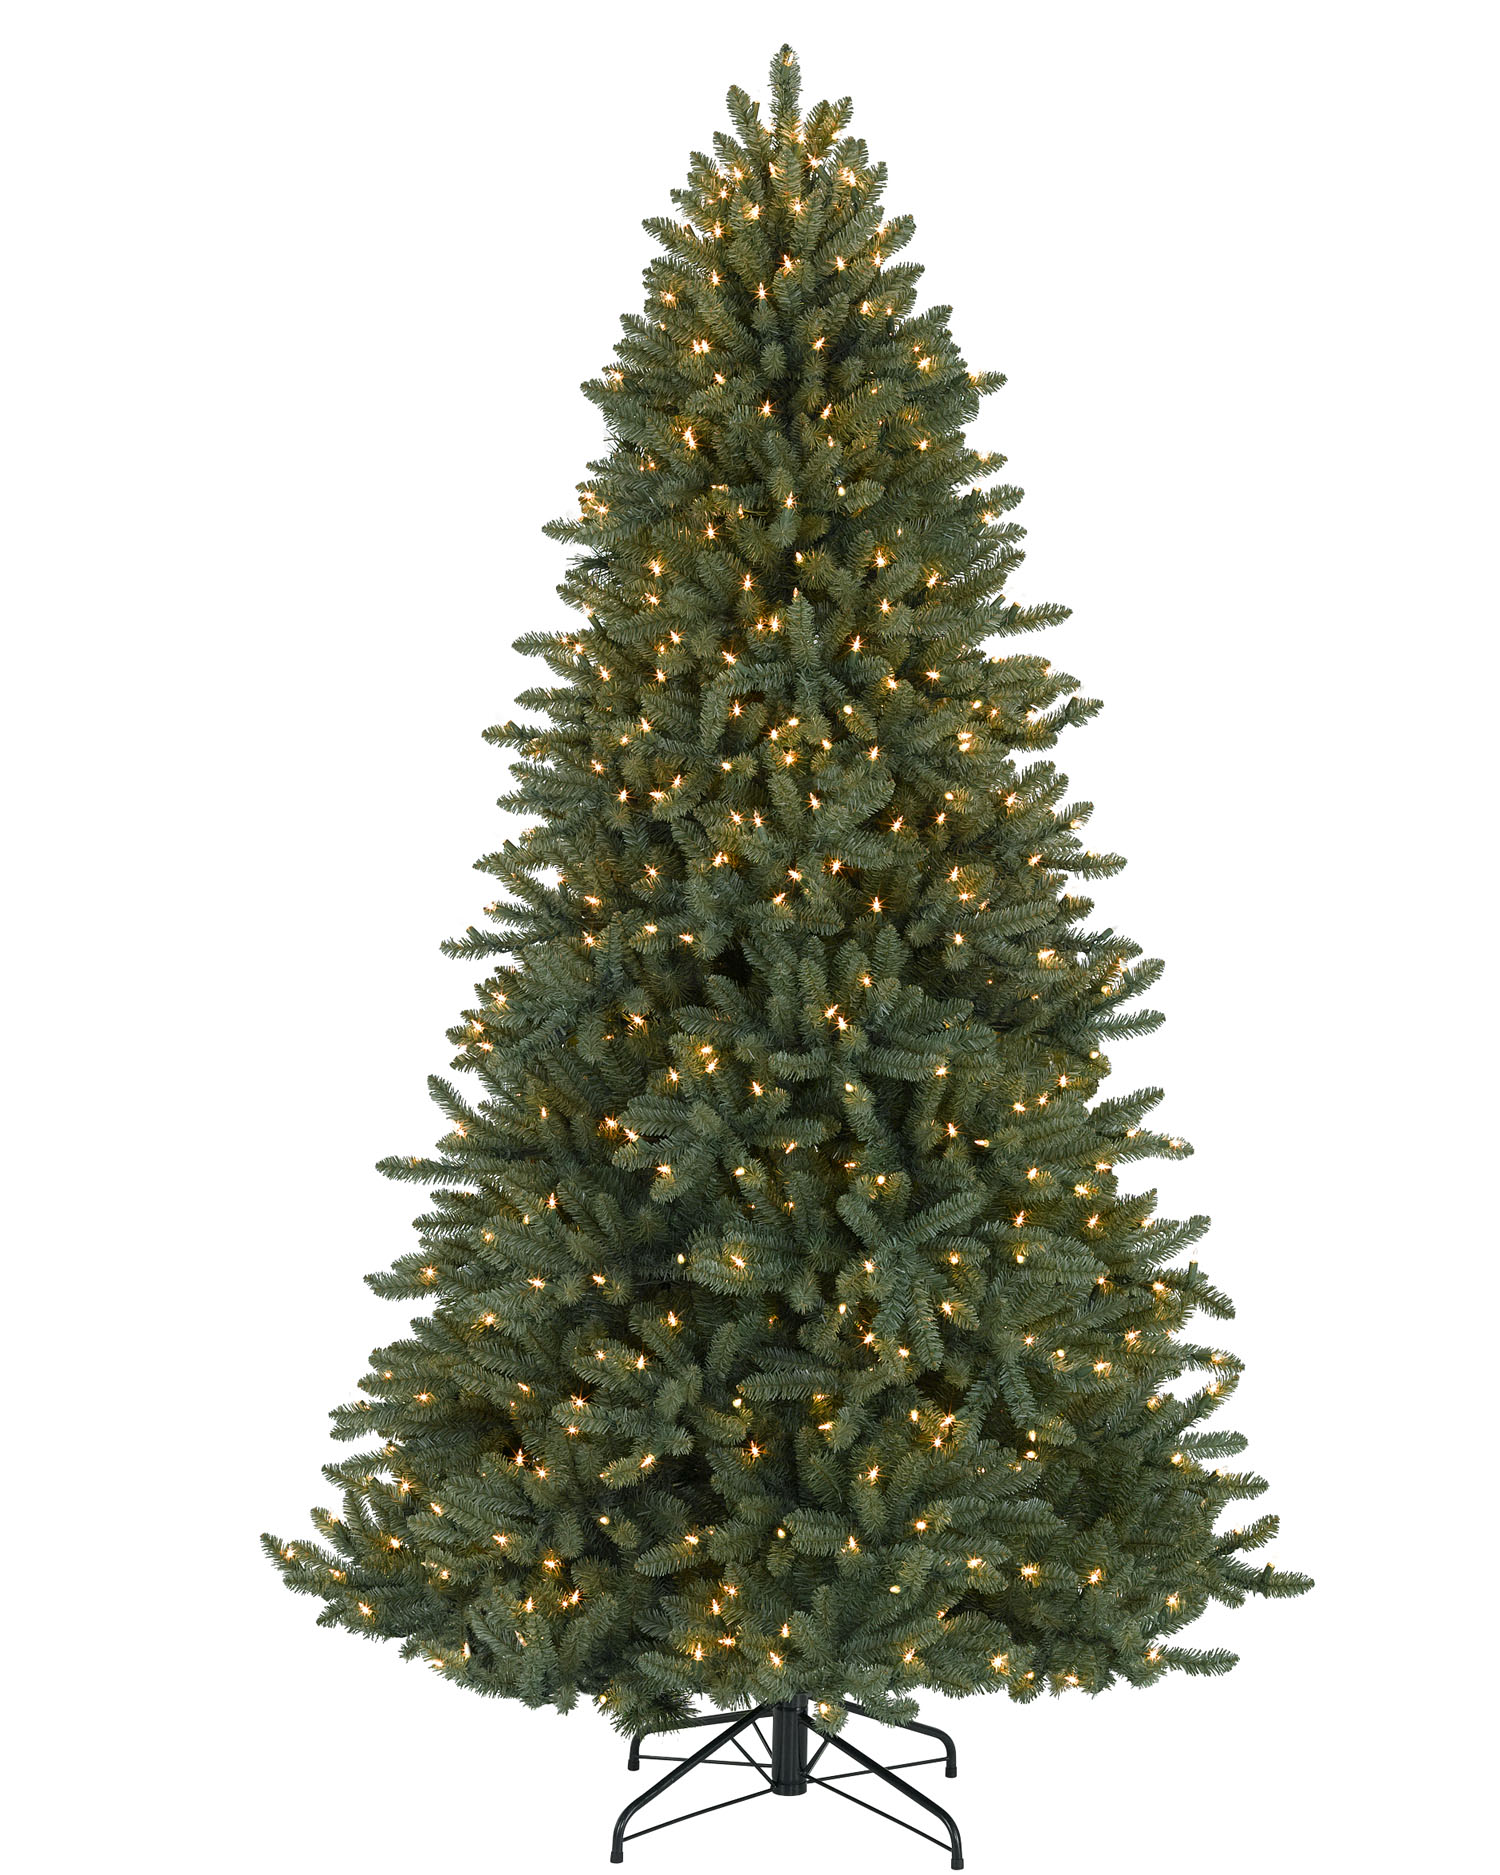 7' Colorado Blue Spruce Tree With Clear Lights Christmas Tree Market - 7 Ft Artificial Christmas Trees